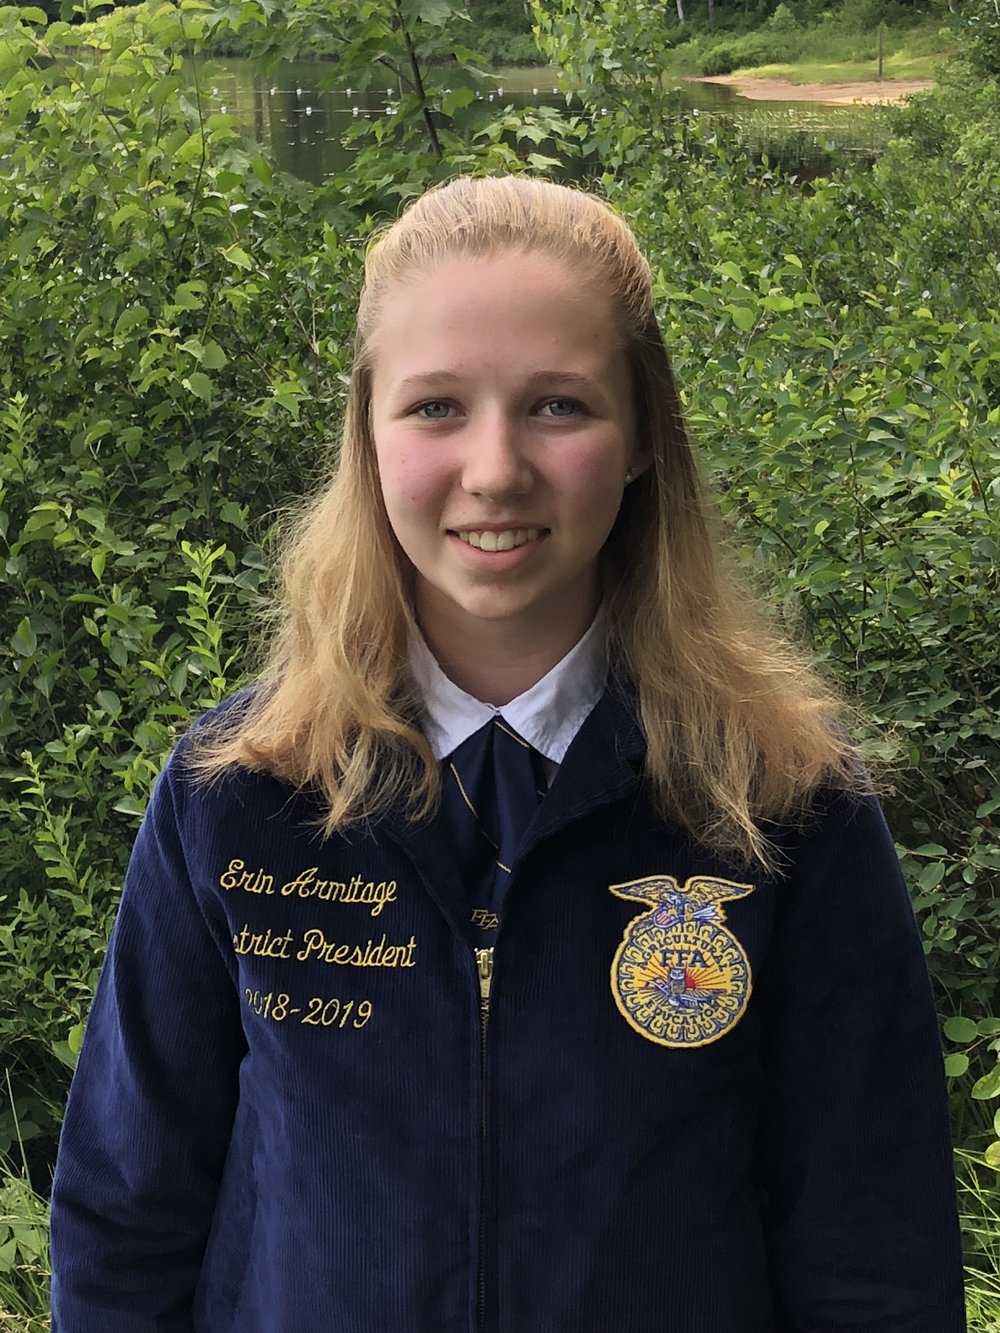 ERIN ARMITAGE DISTRICT 3 PRESIDENT GREENWICH FFA